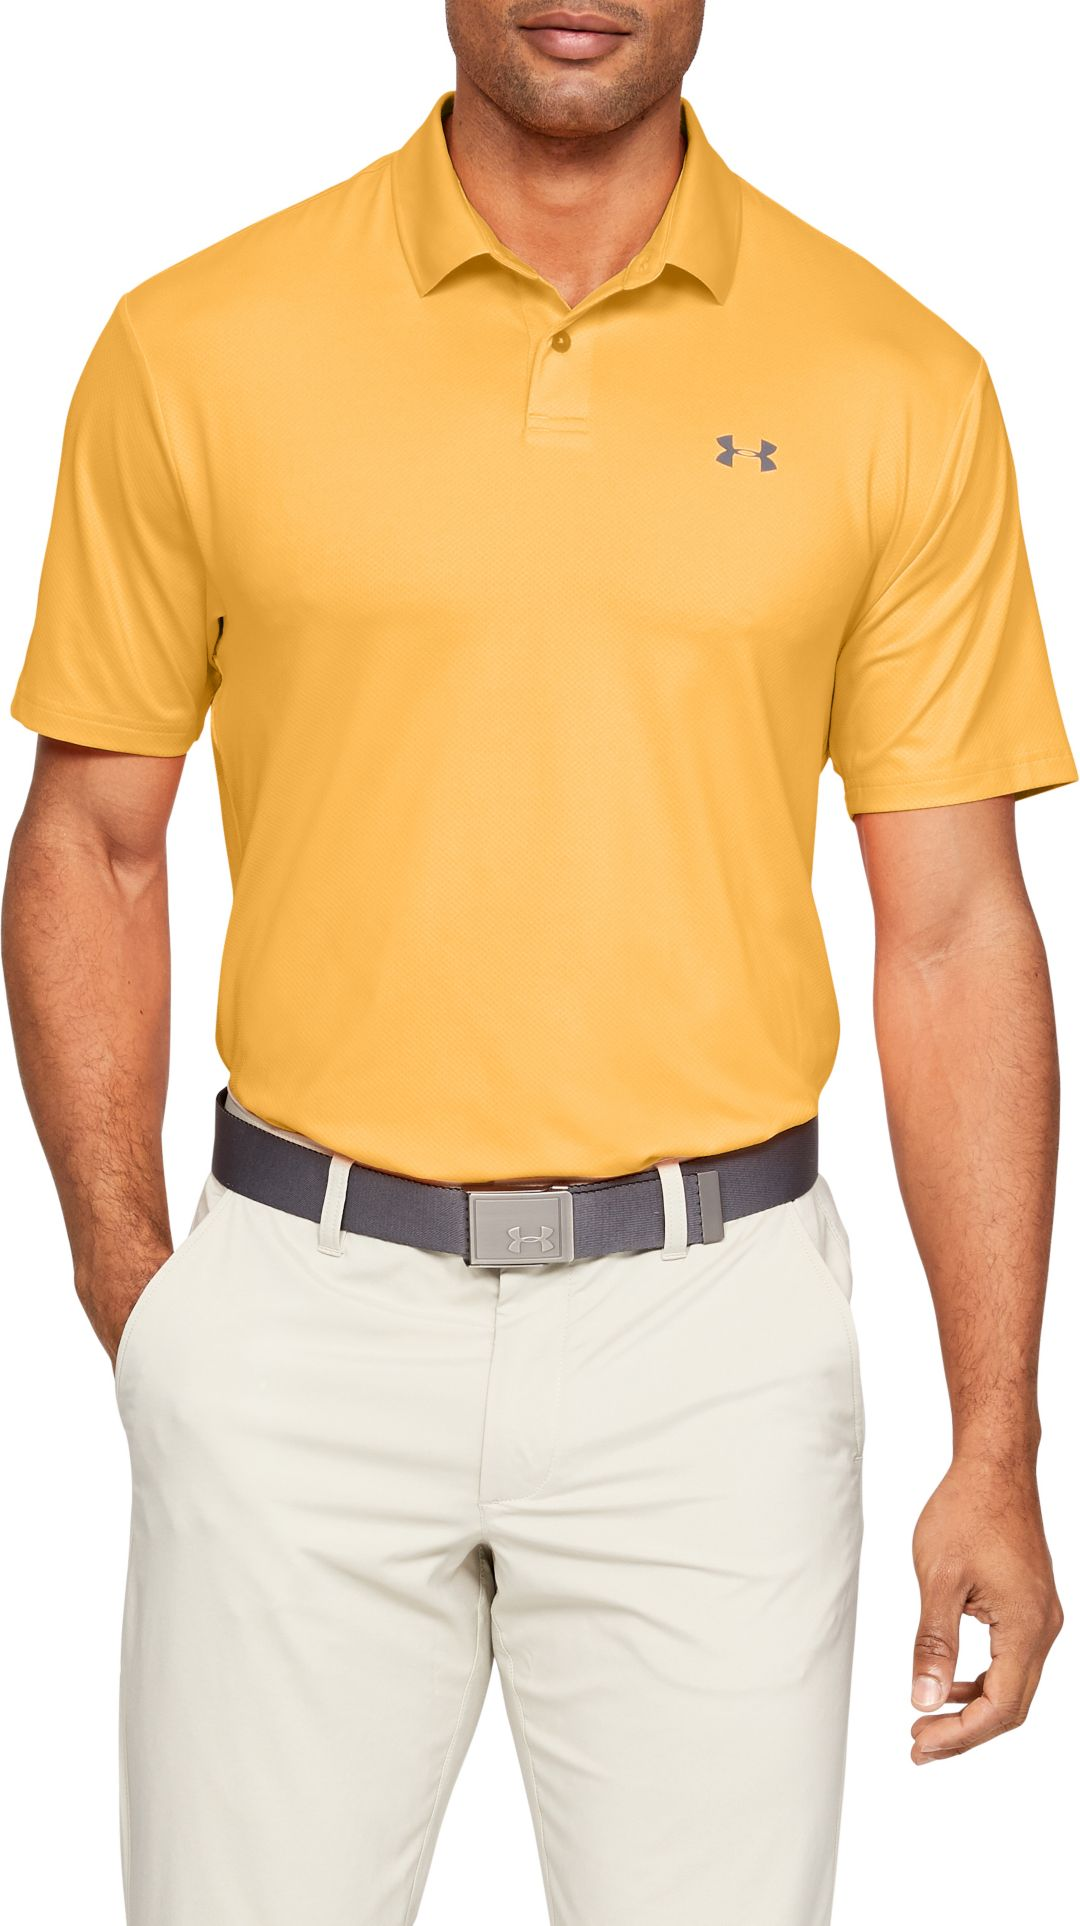 dbd39bdbb Under Armour Men's Performance 2.0 Golf Polo. noImageFound. Previous